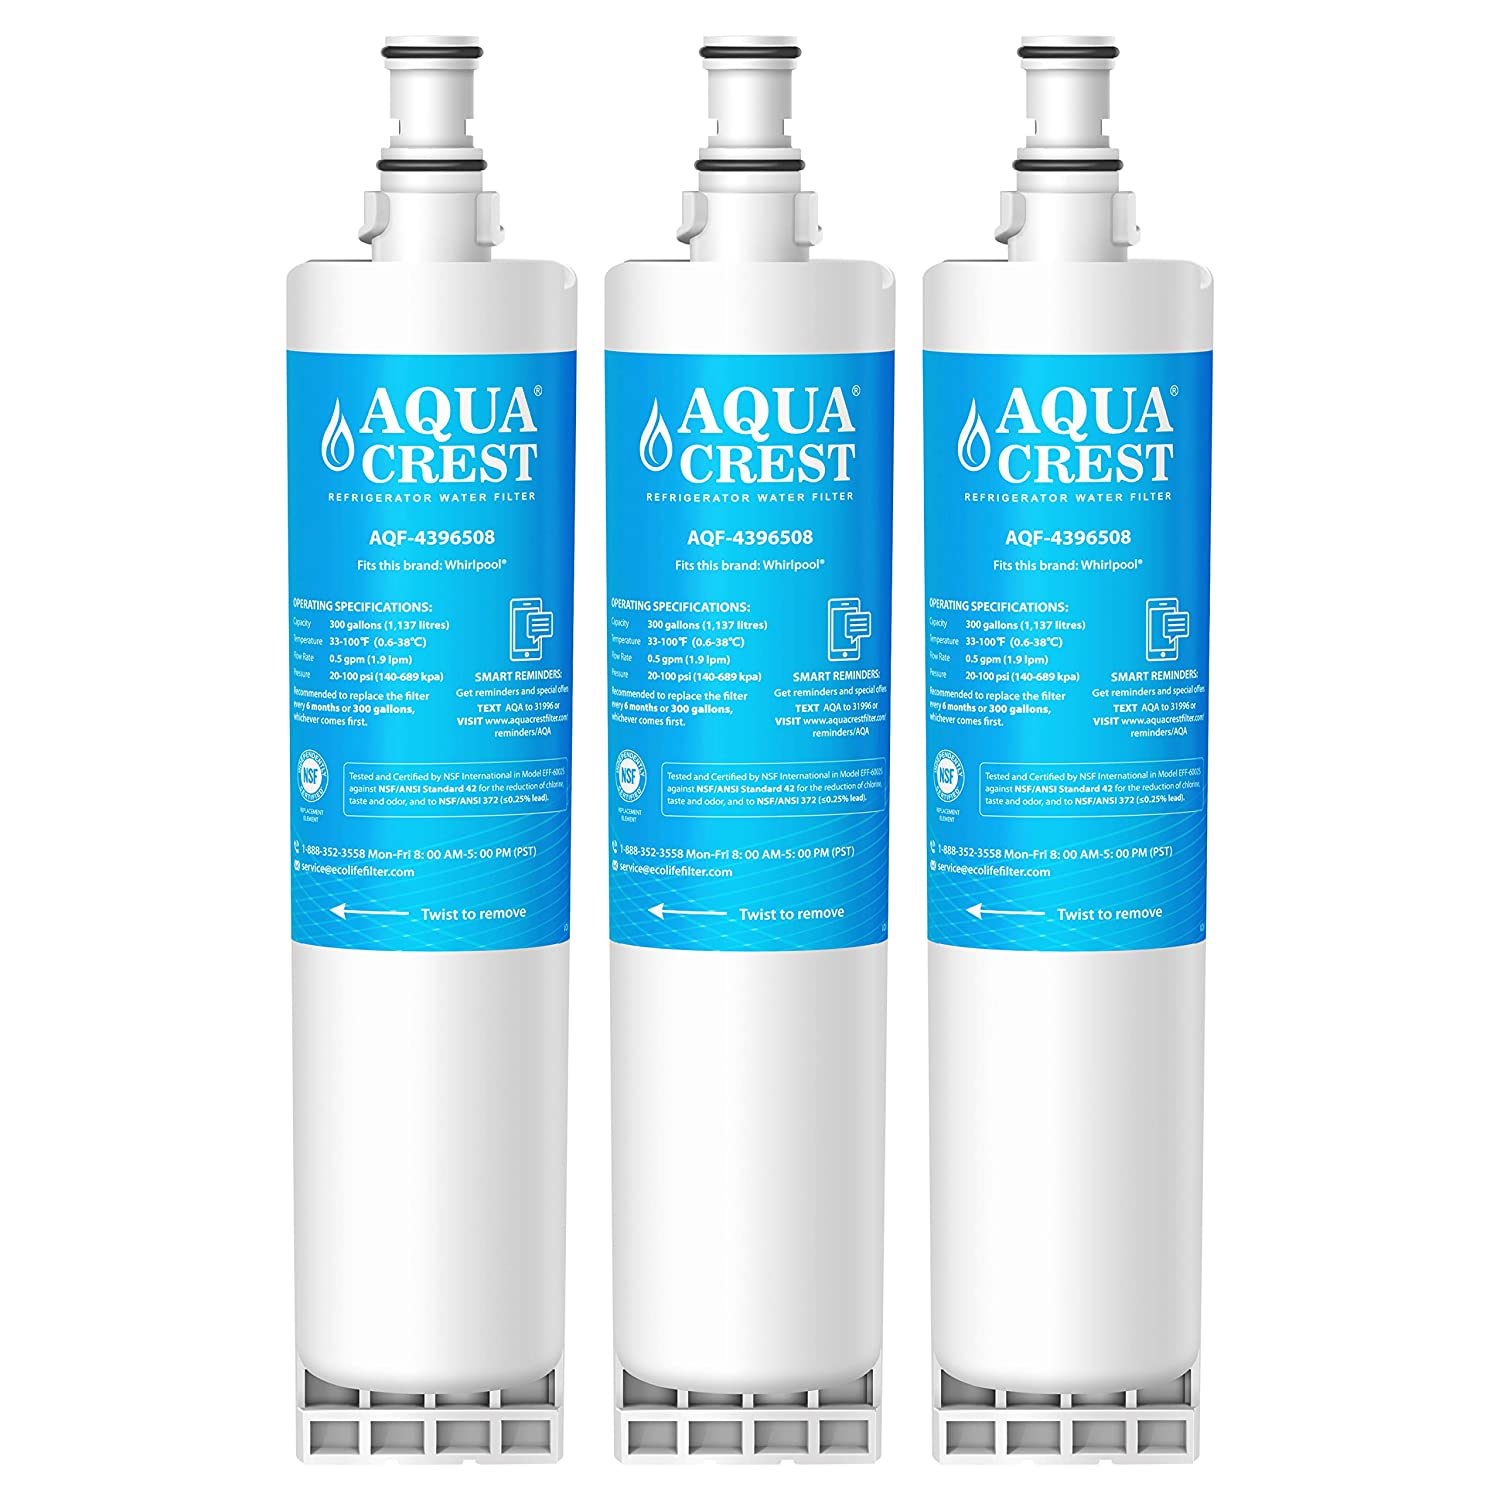 AQUACREST 4396508 Replacement Refrigerator Water Filter, Compatible with Whirlpool 4396508 4396510 EDR5RXD1, EveryDrop Filter 5, Kenmore 46-9010, PUR W10186668, NLC240V (Pack of 3)